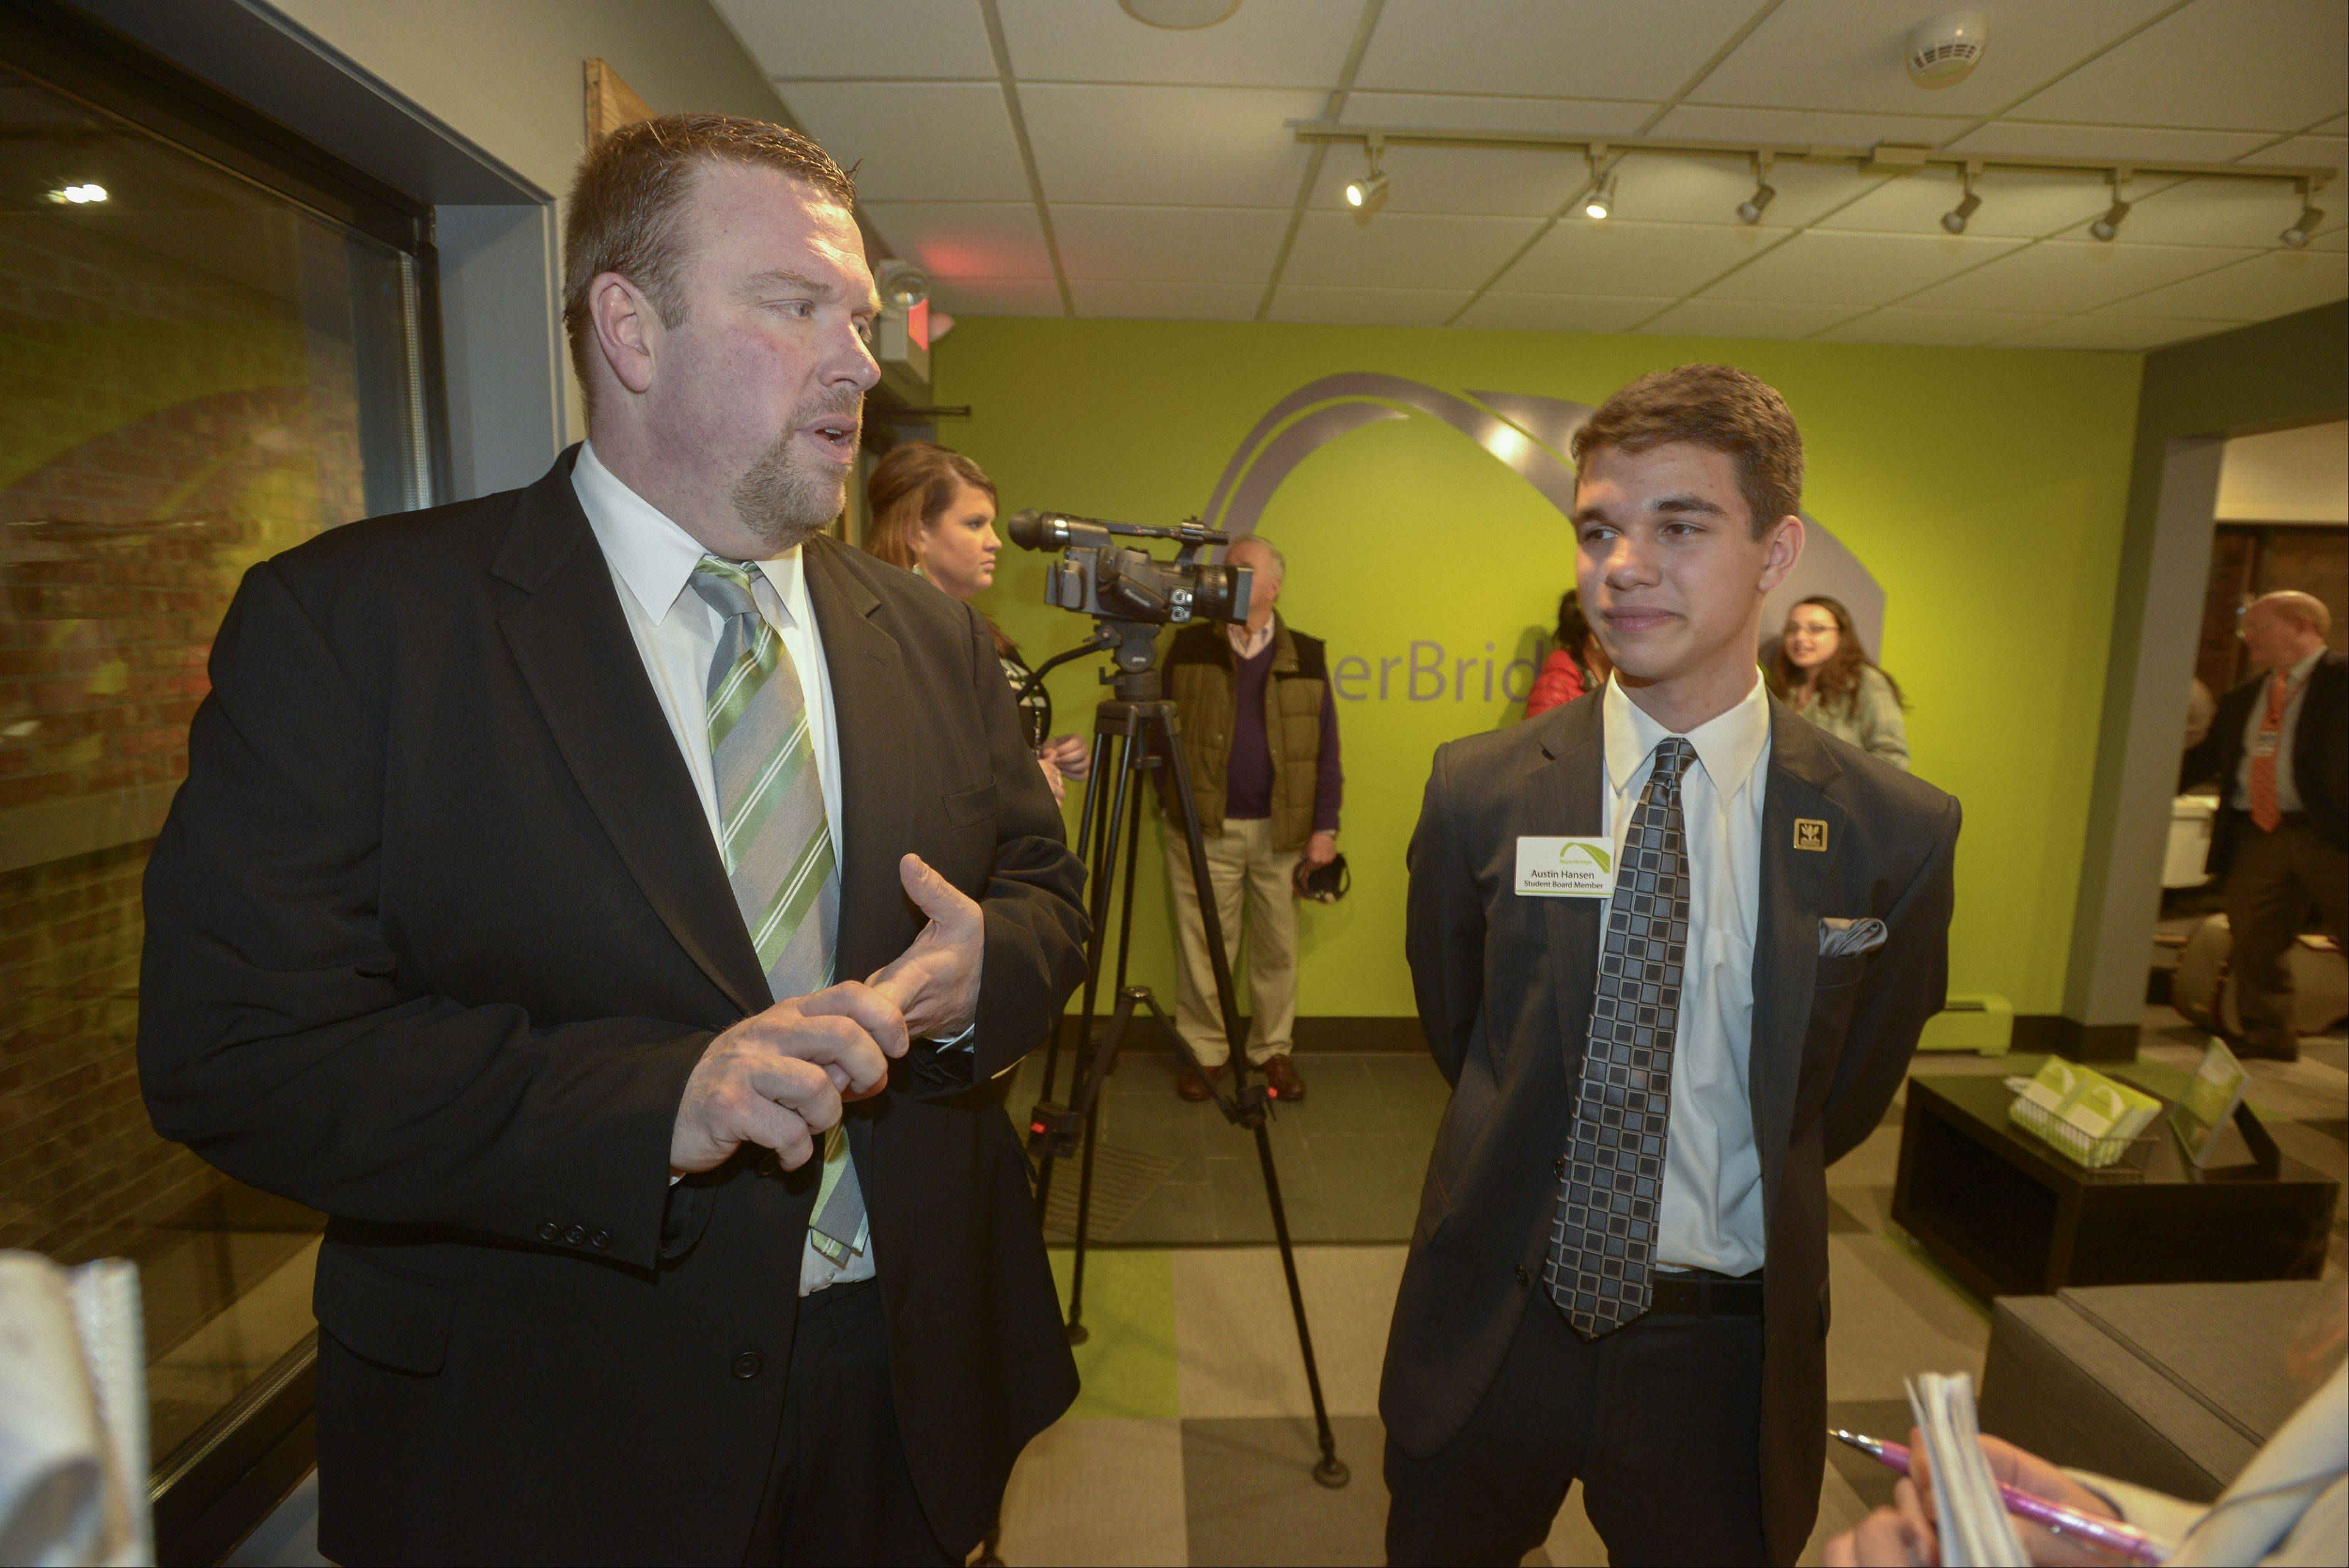 NaperBridge Executive Director Andy Jack and student board member Austin Hansen talk about the new teen center in downtown Naperville that will be unveiled Saturday during an open house.